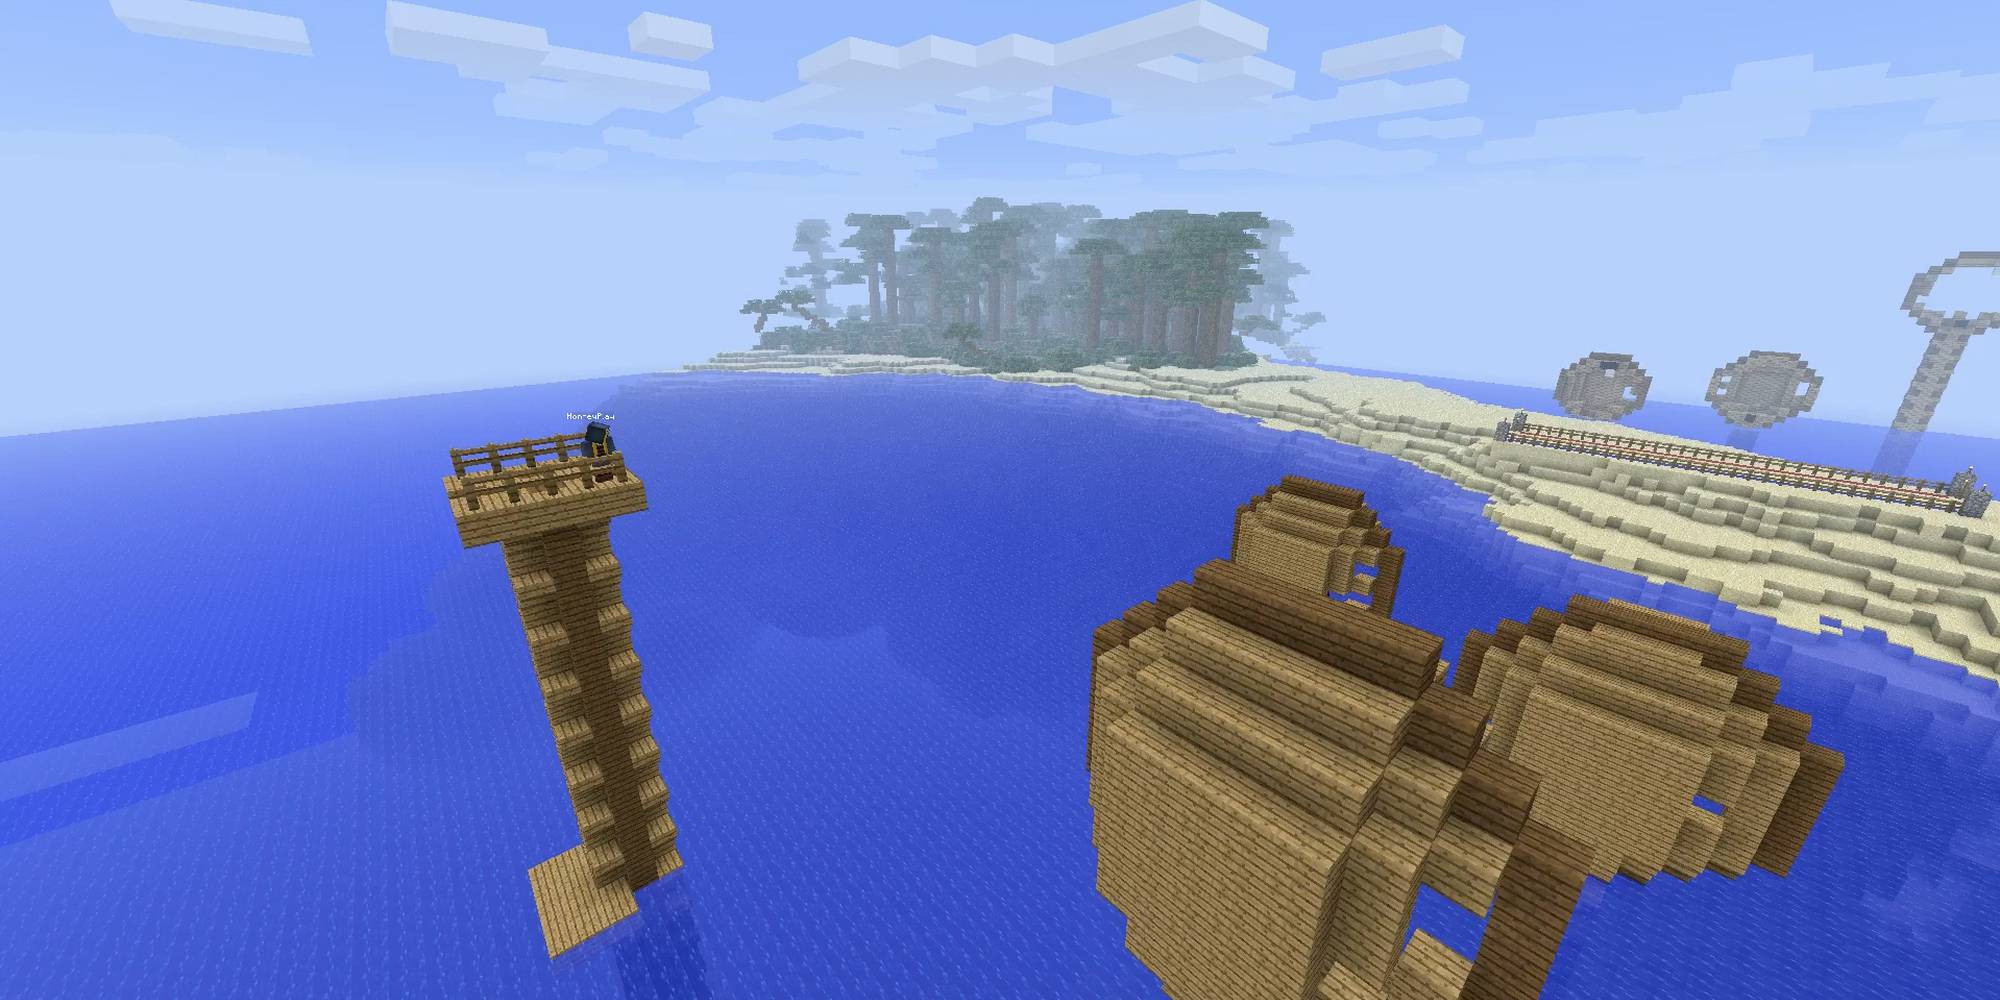 The MindCrack team built a massive island world for the players to duke it out on.